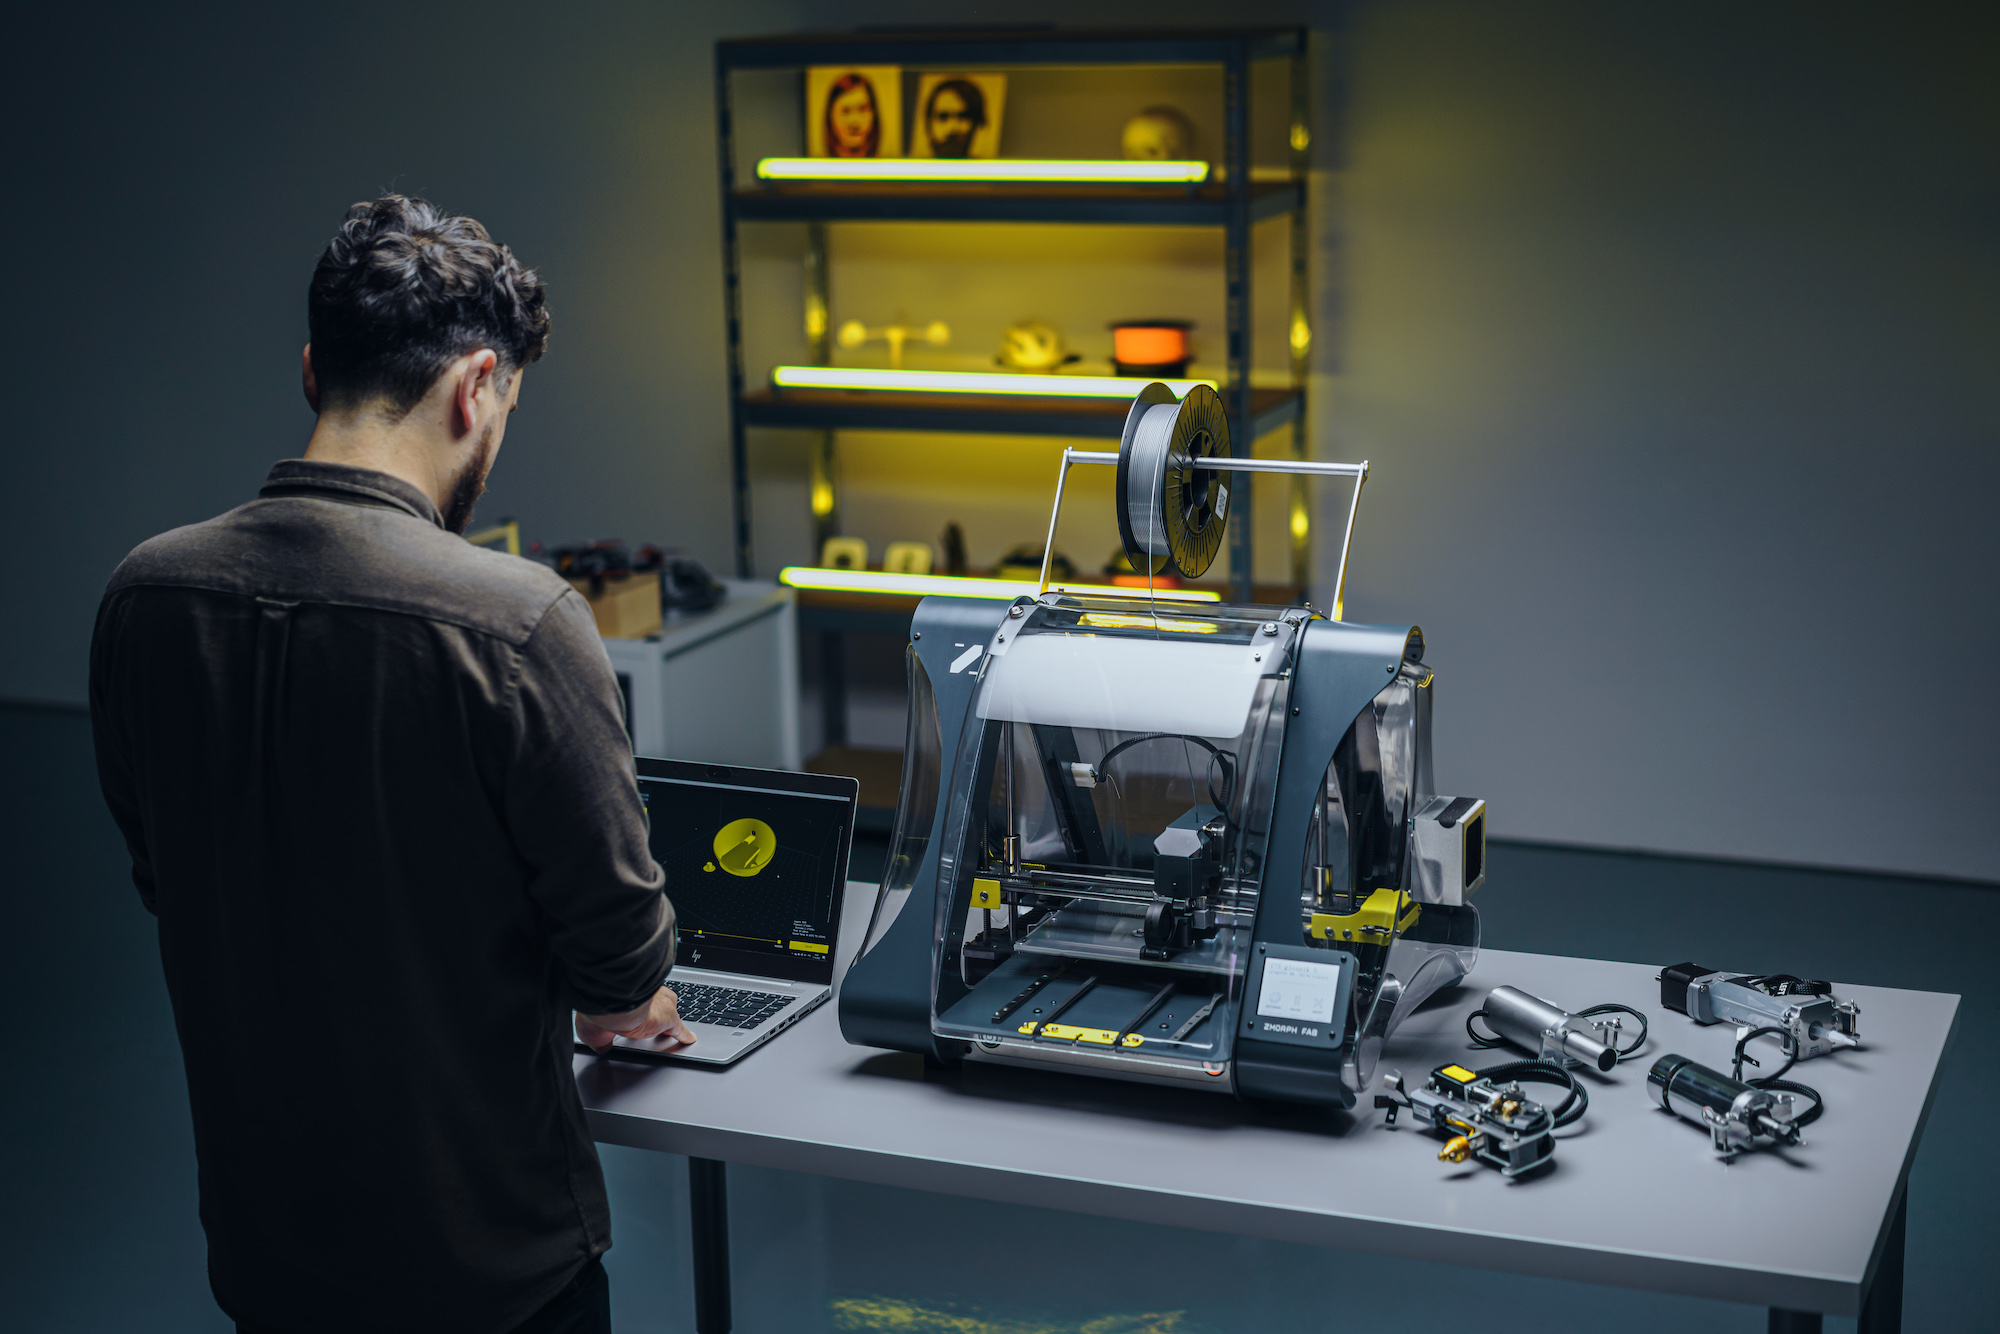 Zmorph Matures And Brings Industrial Quality To 3D Printing